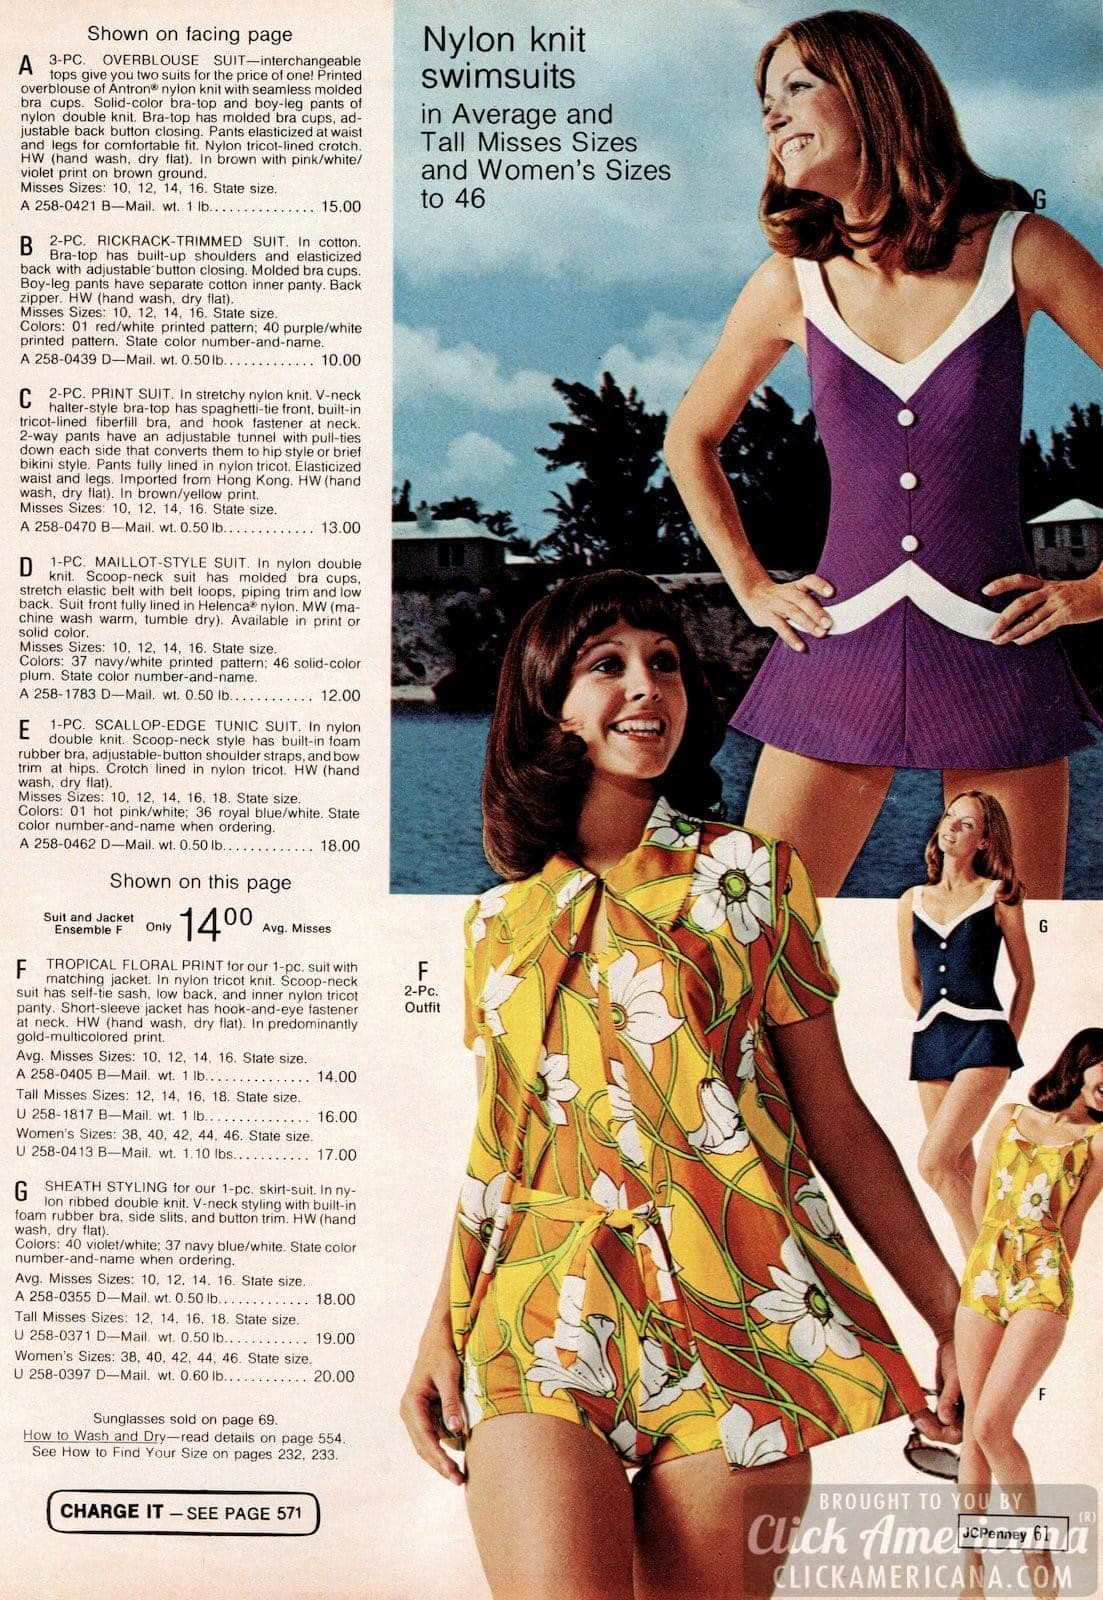 Sears jc penny teen underwear ads